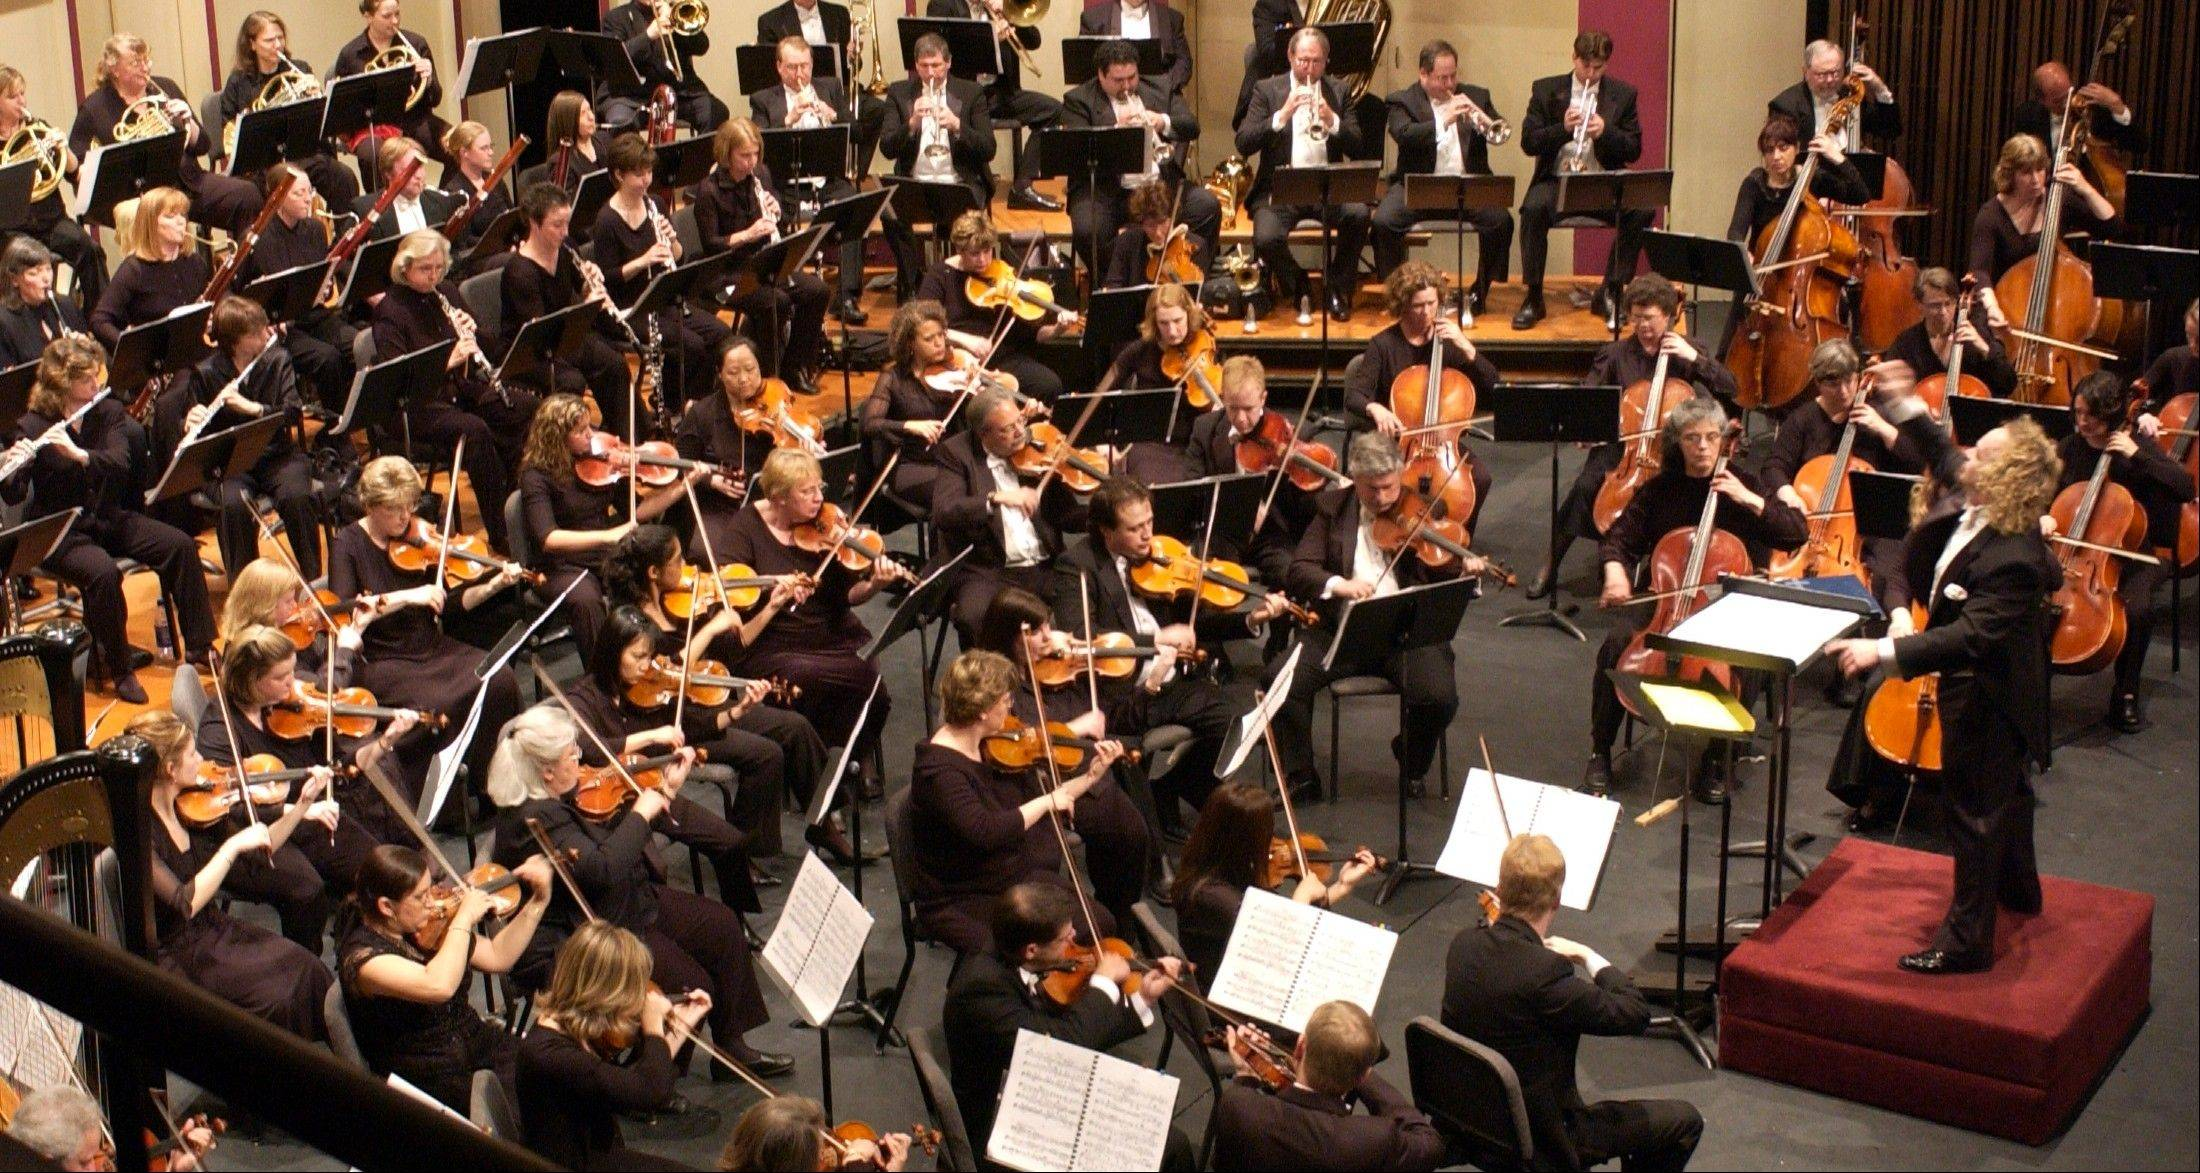 The 80-member New Philharmonic orchestra is in jeopardy of being eliminated after 36 years at the McAninch Arts Center at the College of DuPage.